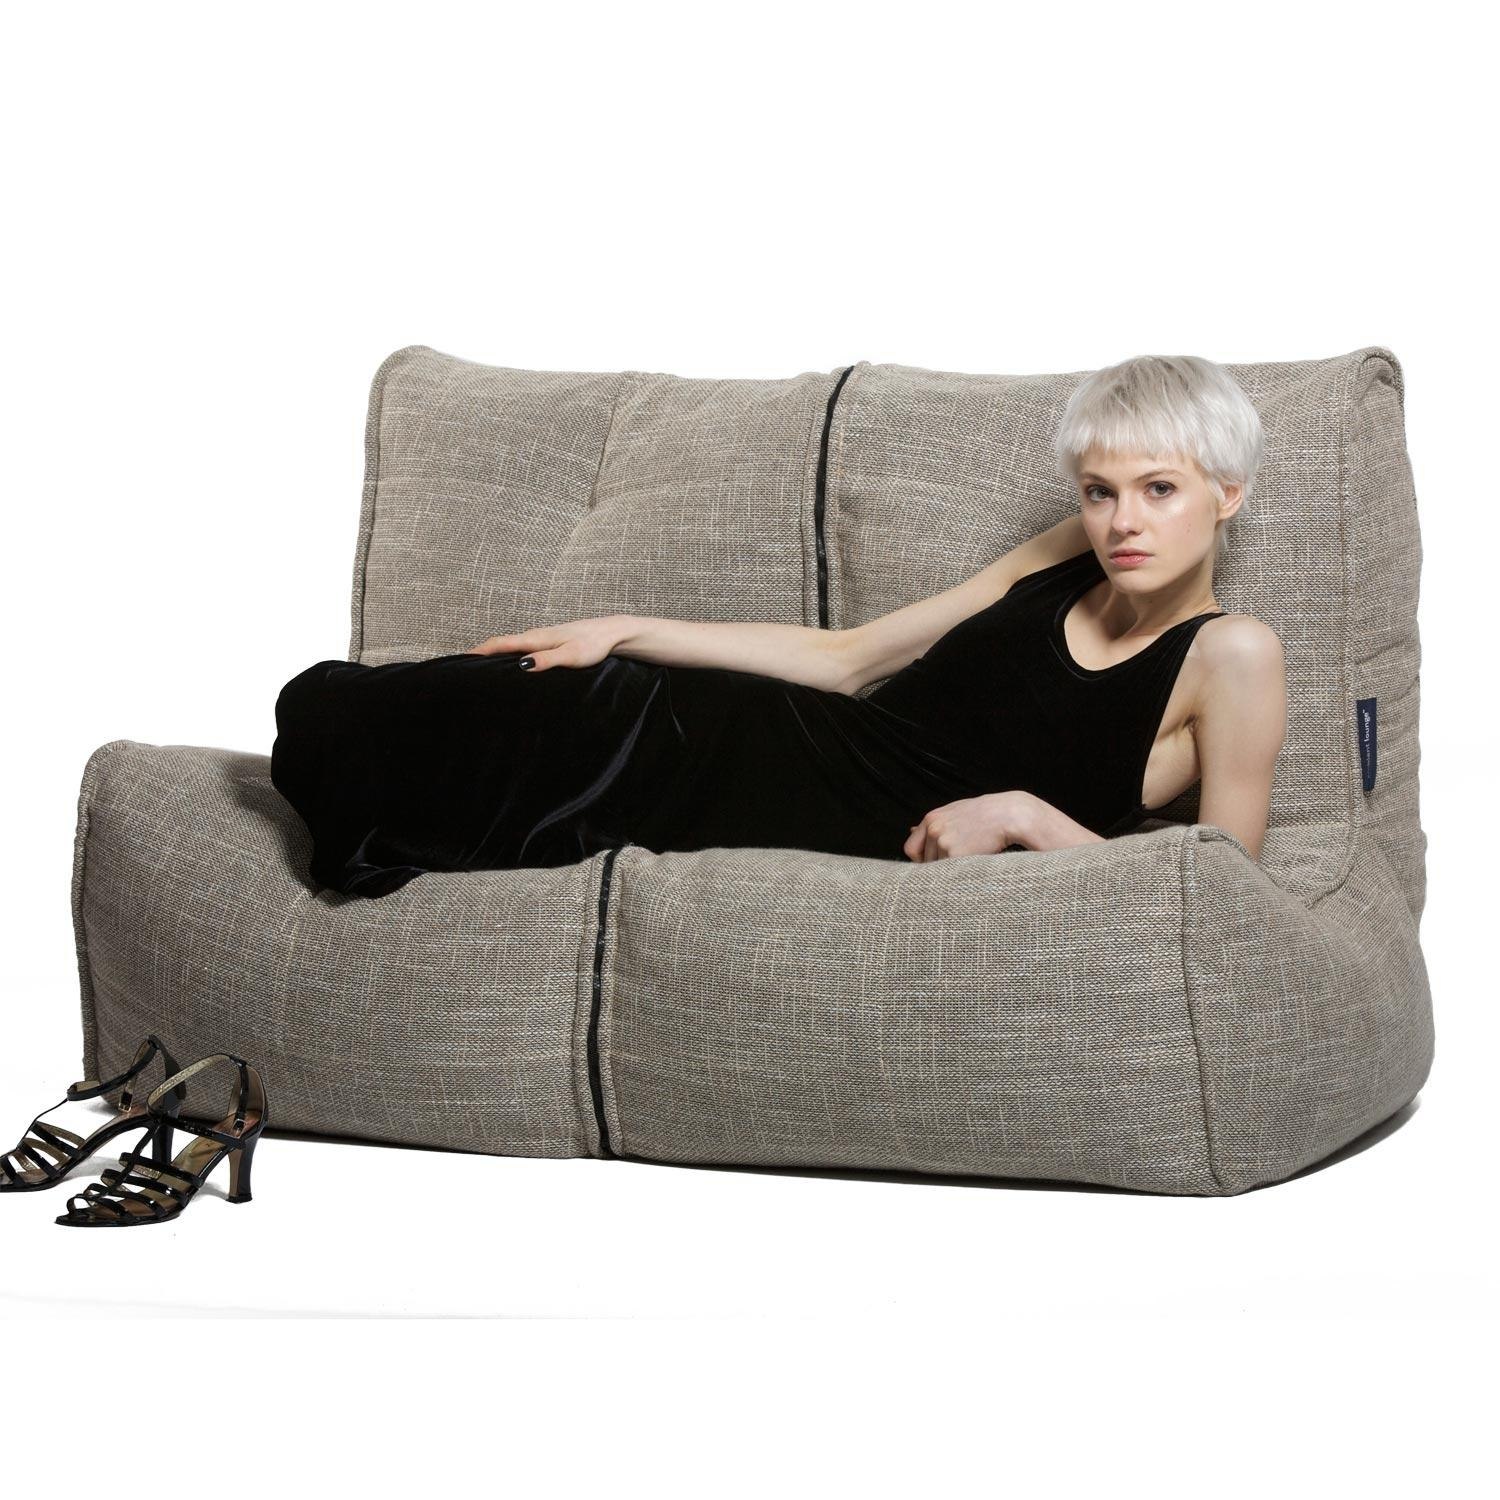 Sofas Center : 46 Staggering Bean Bag Sofa Photos Ideas Bean Bag For Bean Bag Sofas And Chairs (Image 18 of 20)